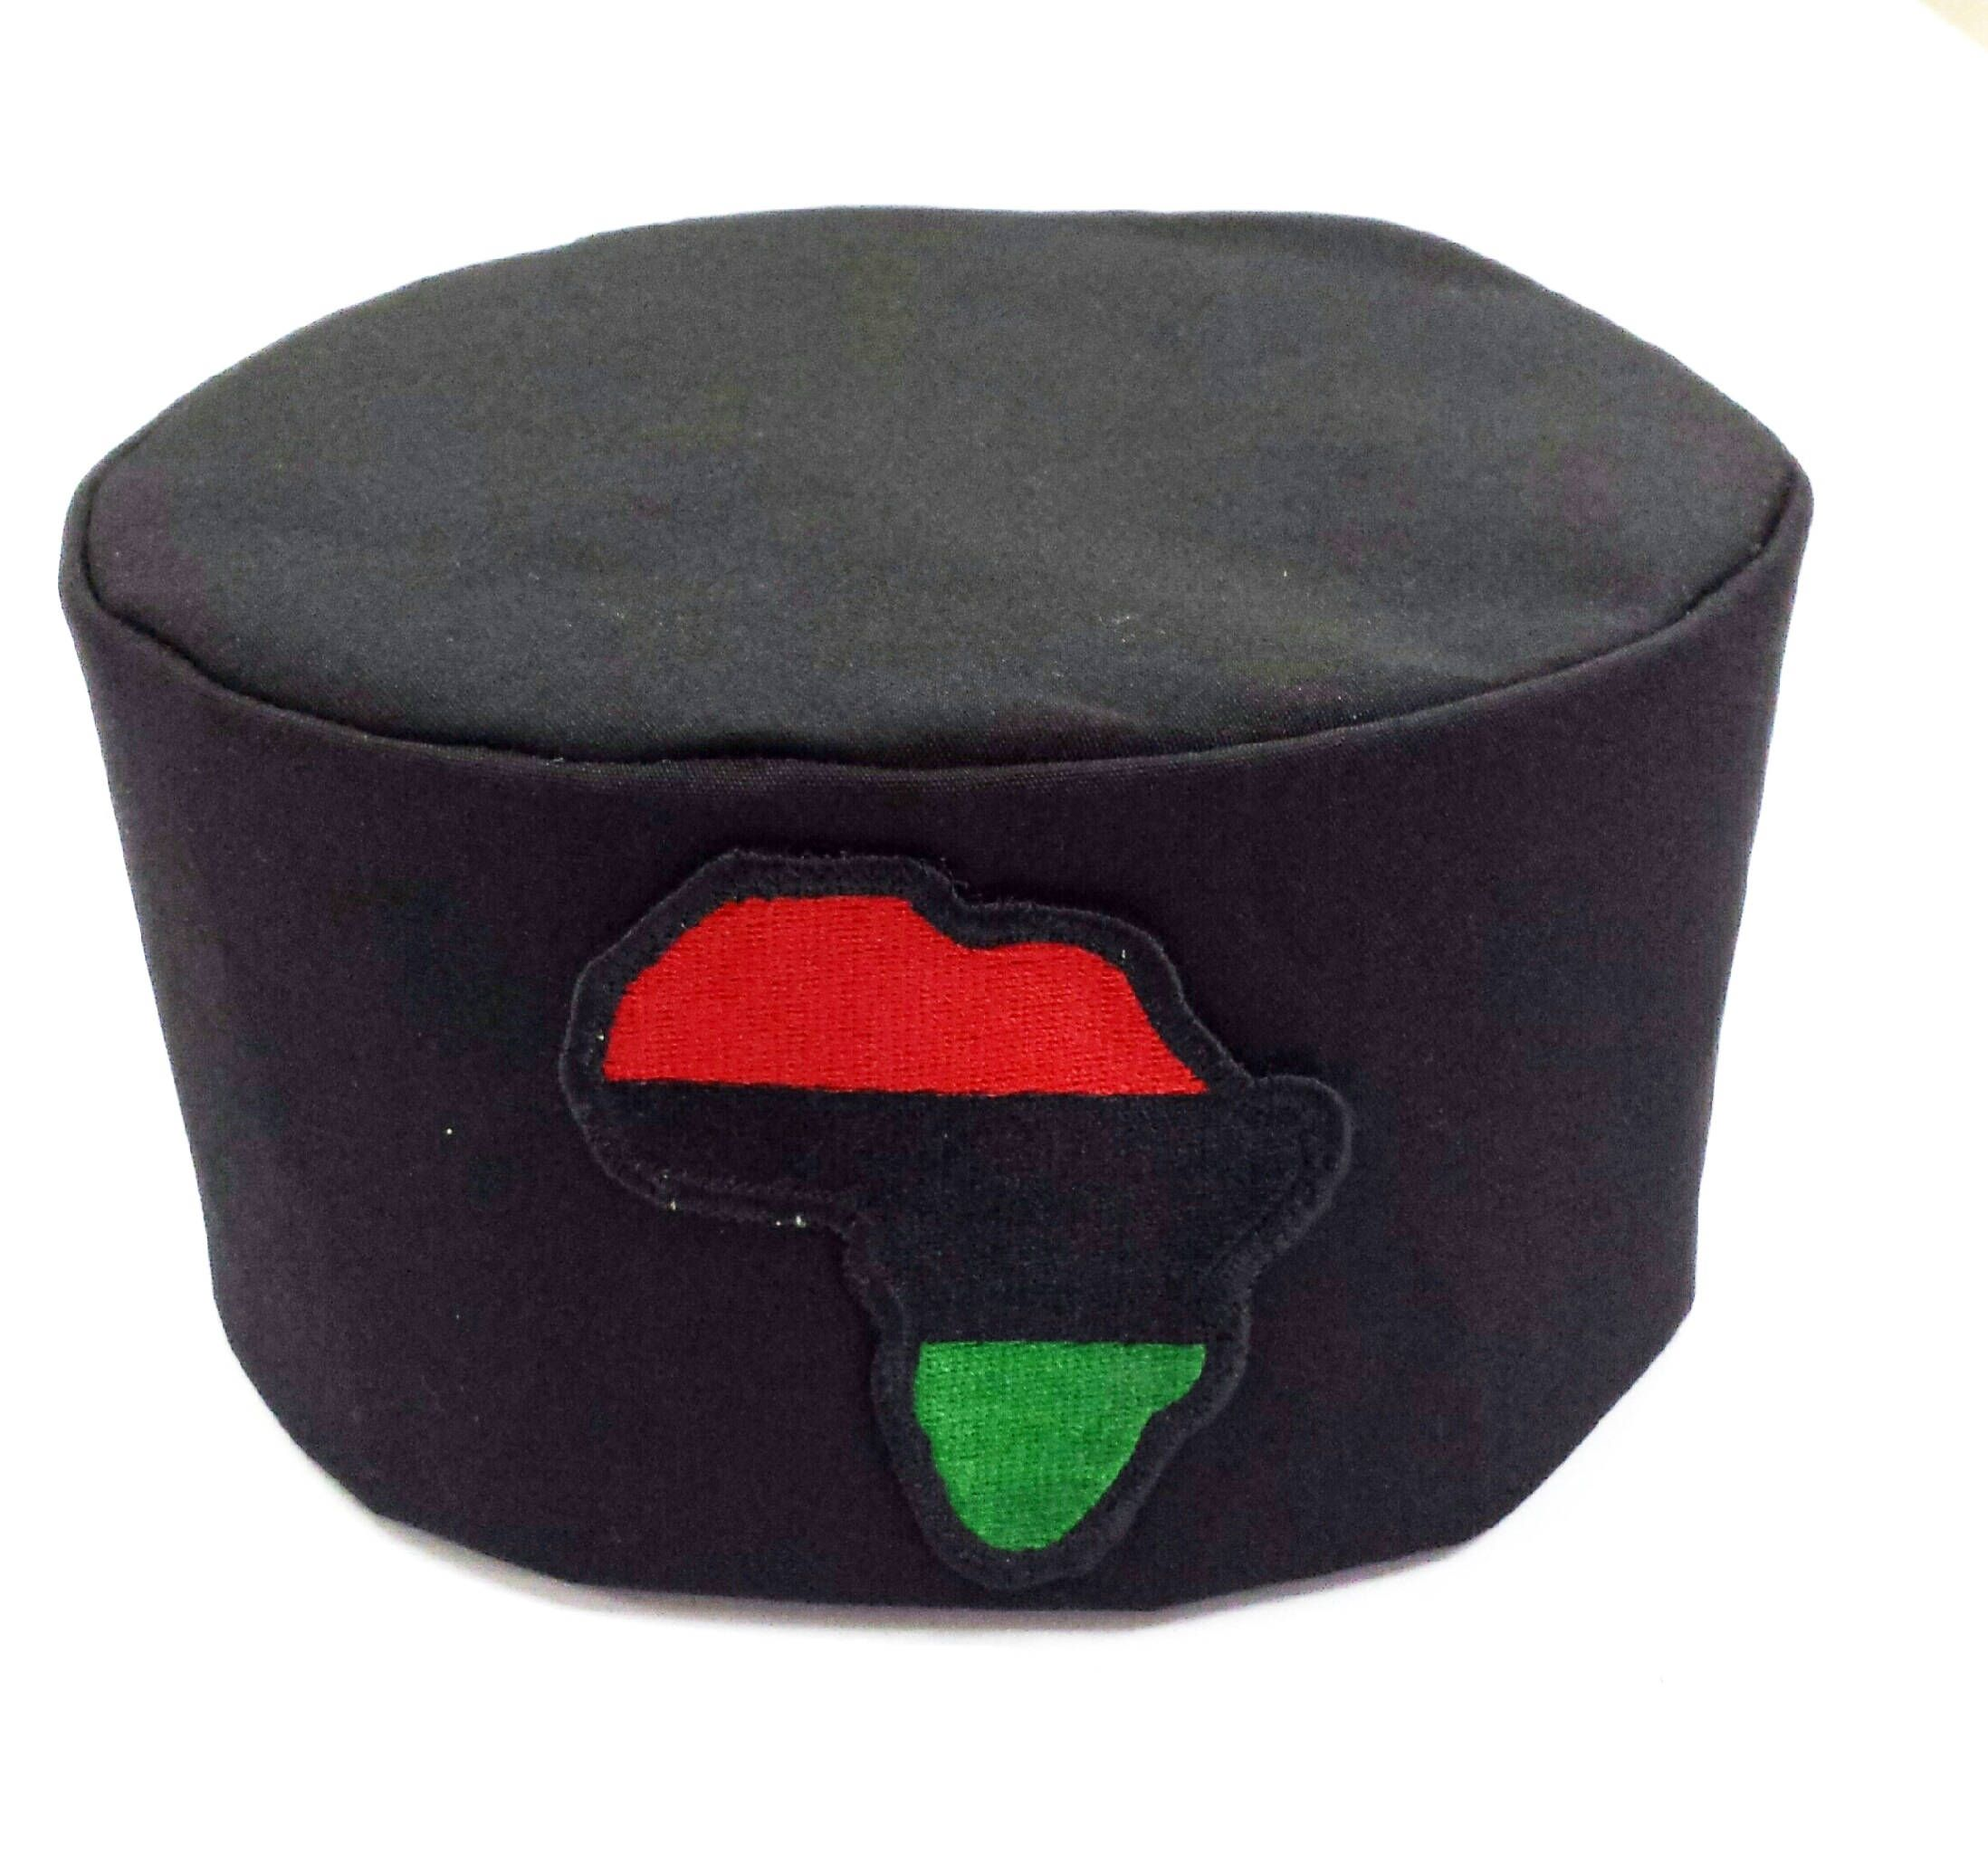 African Black Hat Kufi Map Of Africa Patch 100 Cotton All Sizes Free Shipping By Africaqueenbe On Etsy African Hats African Map Africa Map